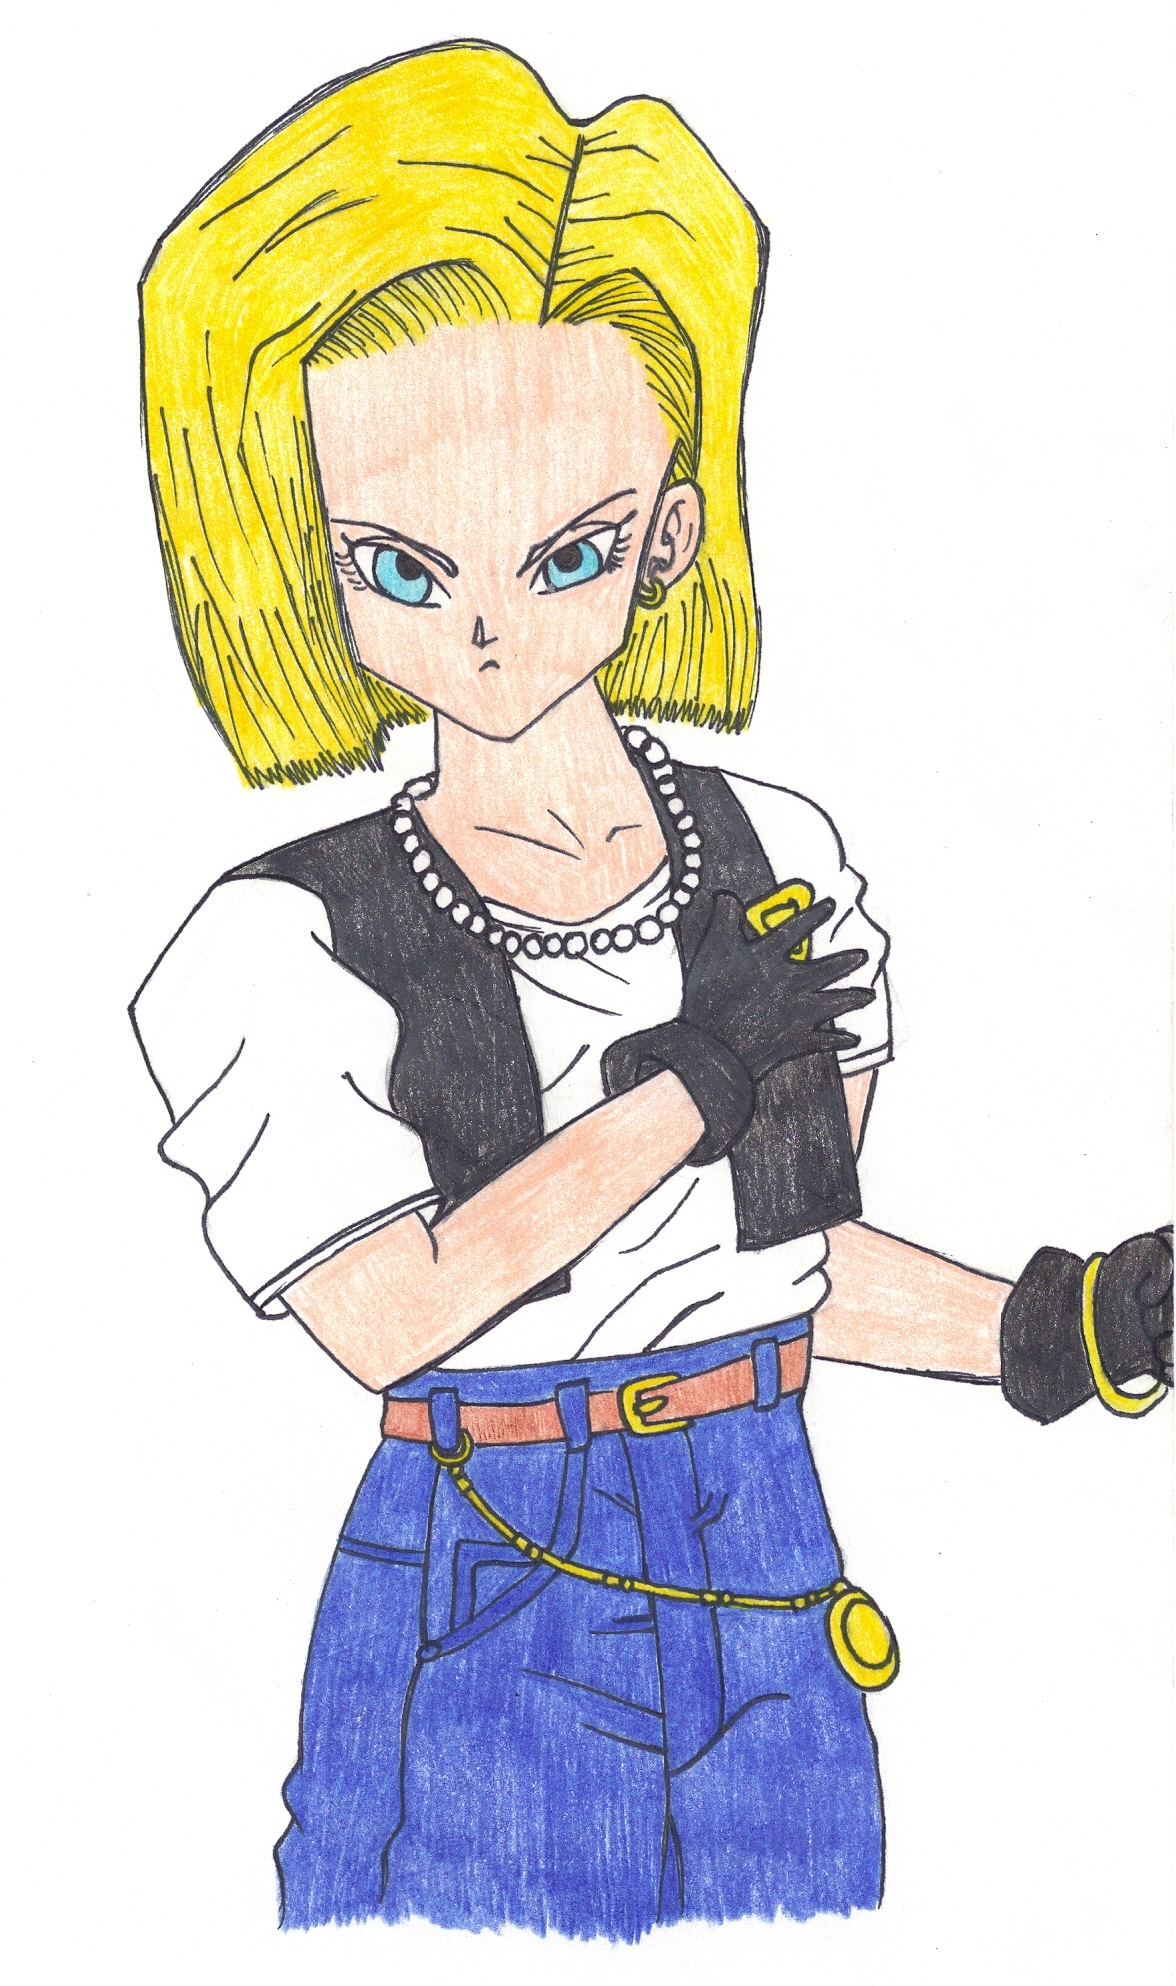 Dragon ball android 18 images hot pictures space hot - Dragon ball zc 18 ...